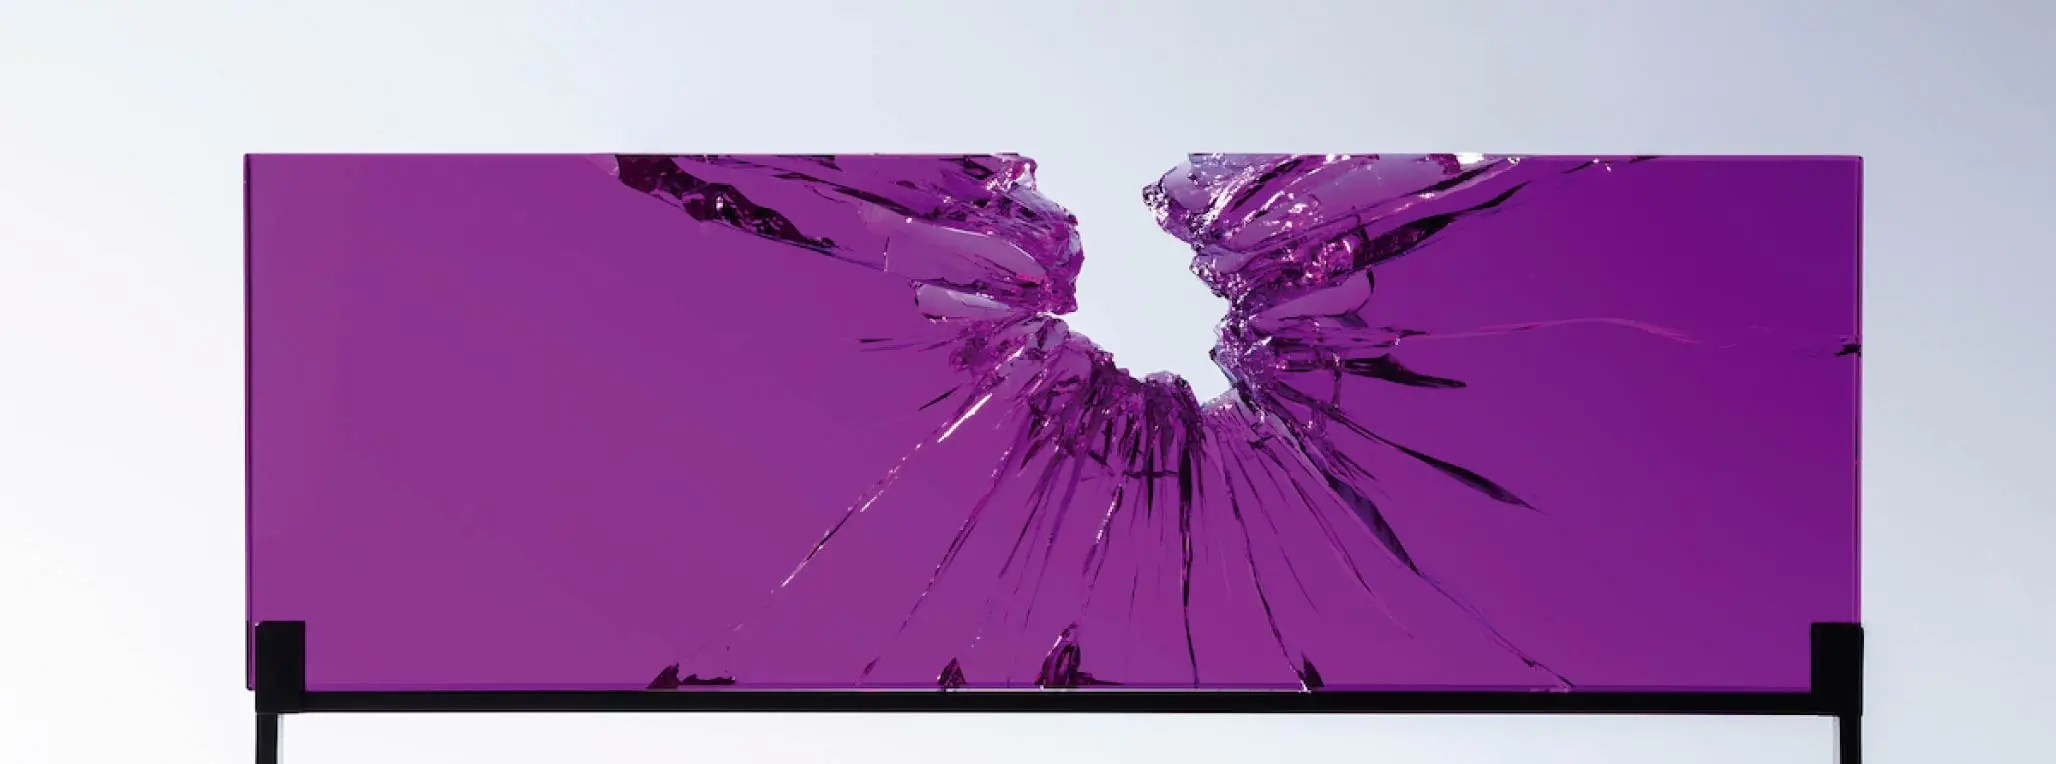 Kiley,-John,-Magenta-Fractograph-I,-Fractured-and-Reassembled-Glass